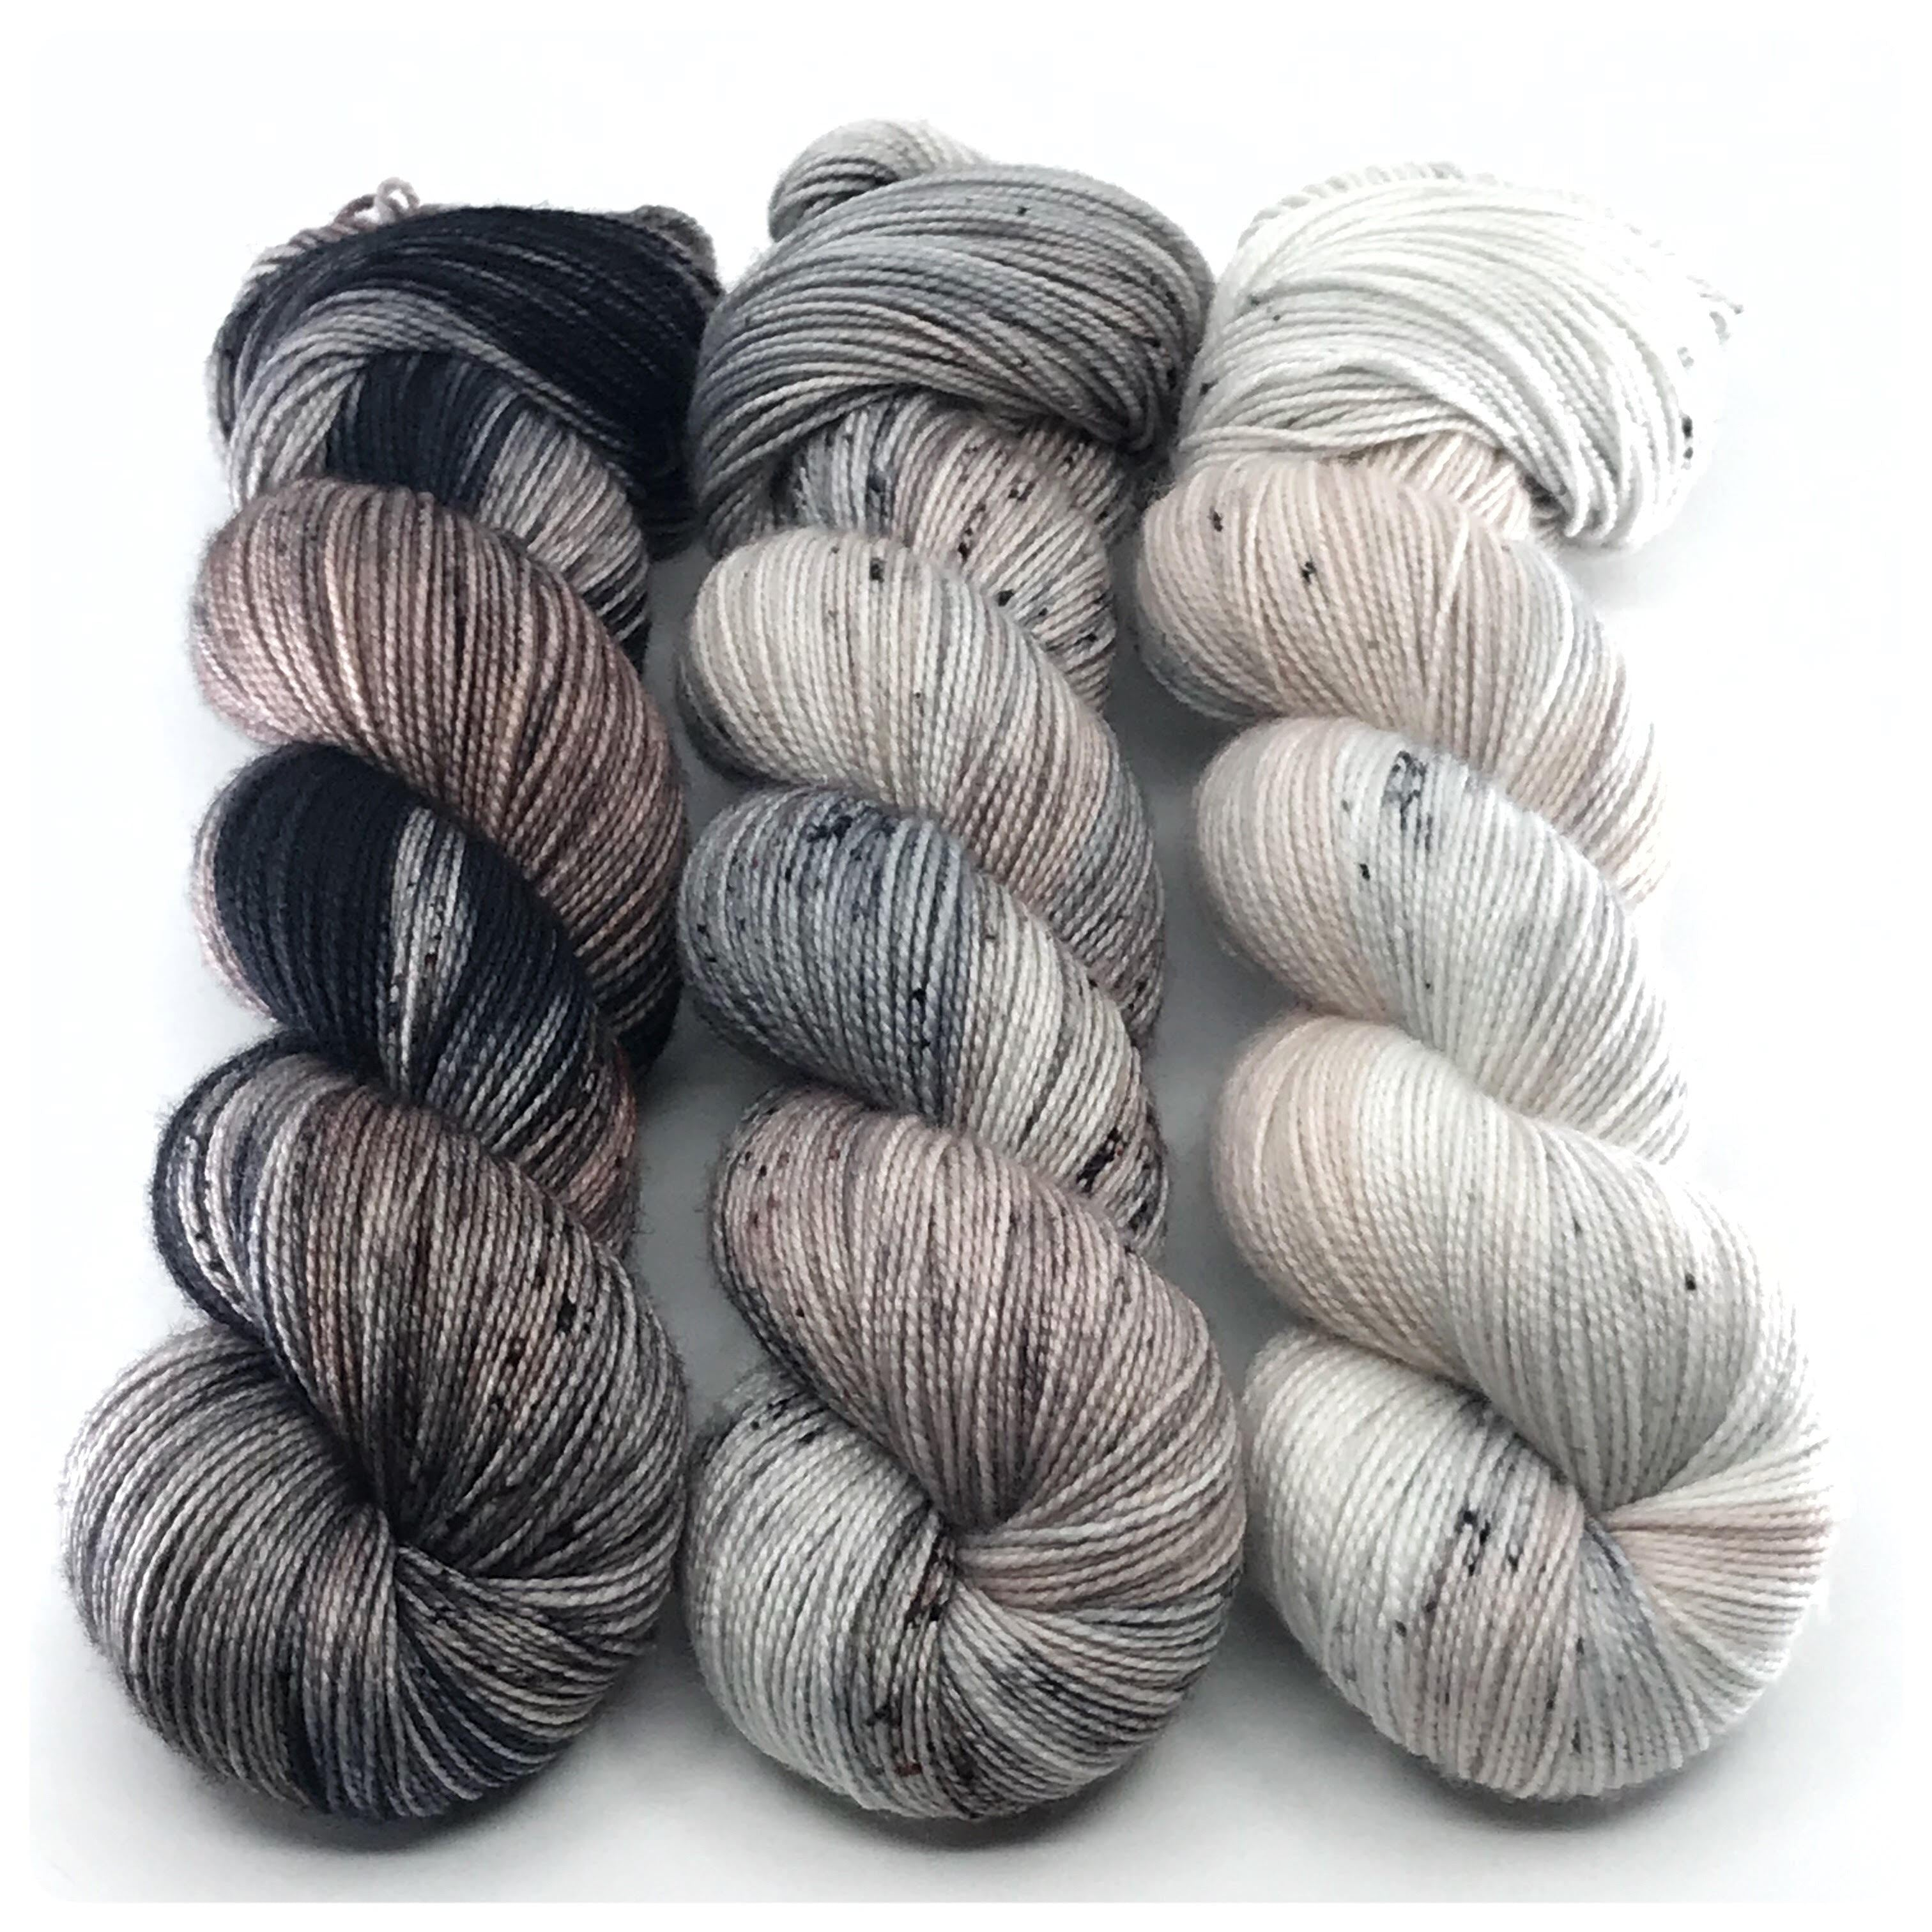 Driftwood Impressionists MKAL Kit, hand dyed yarn